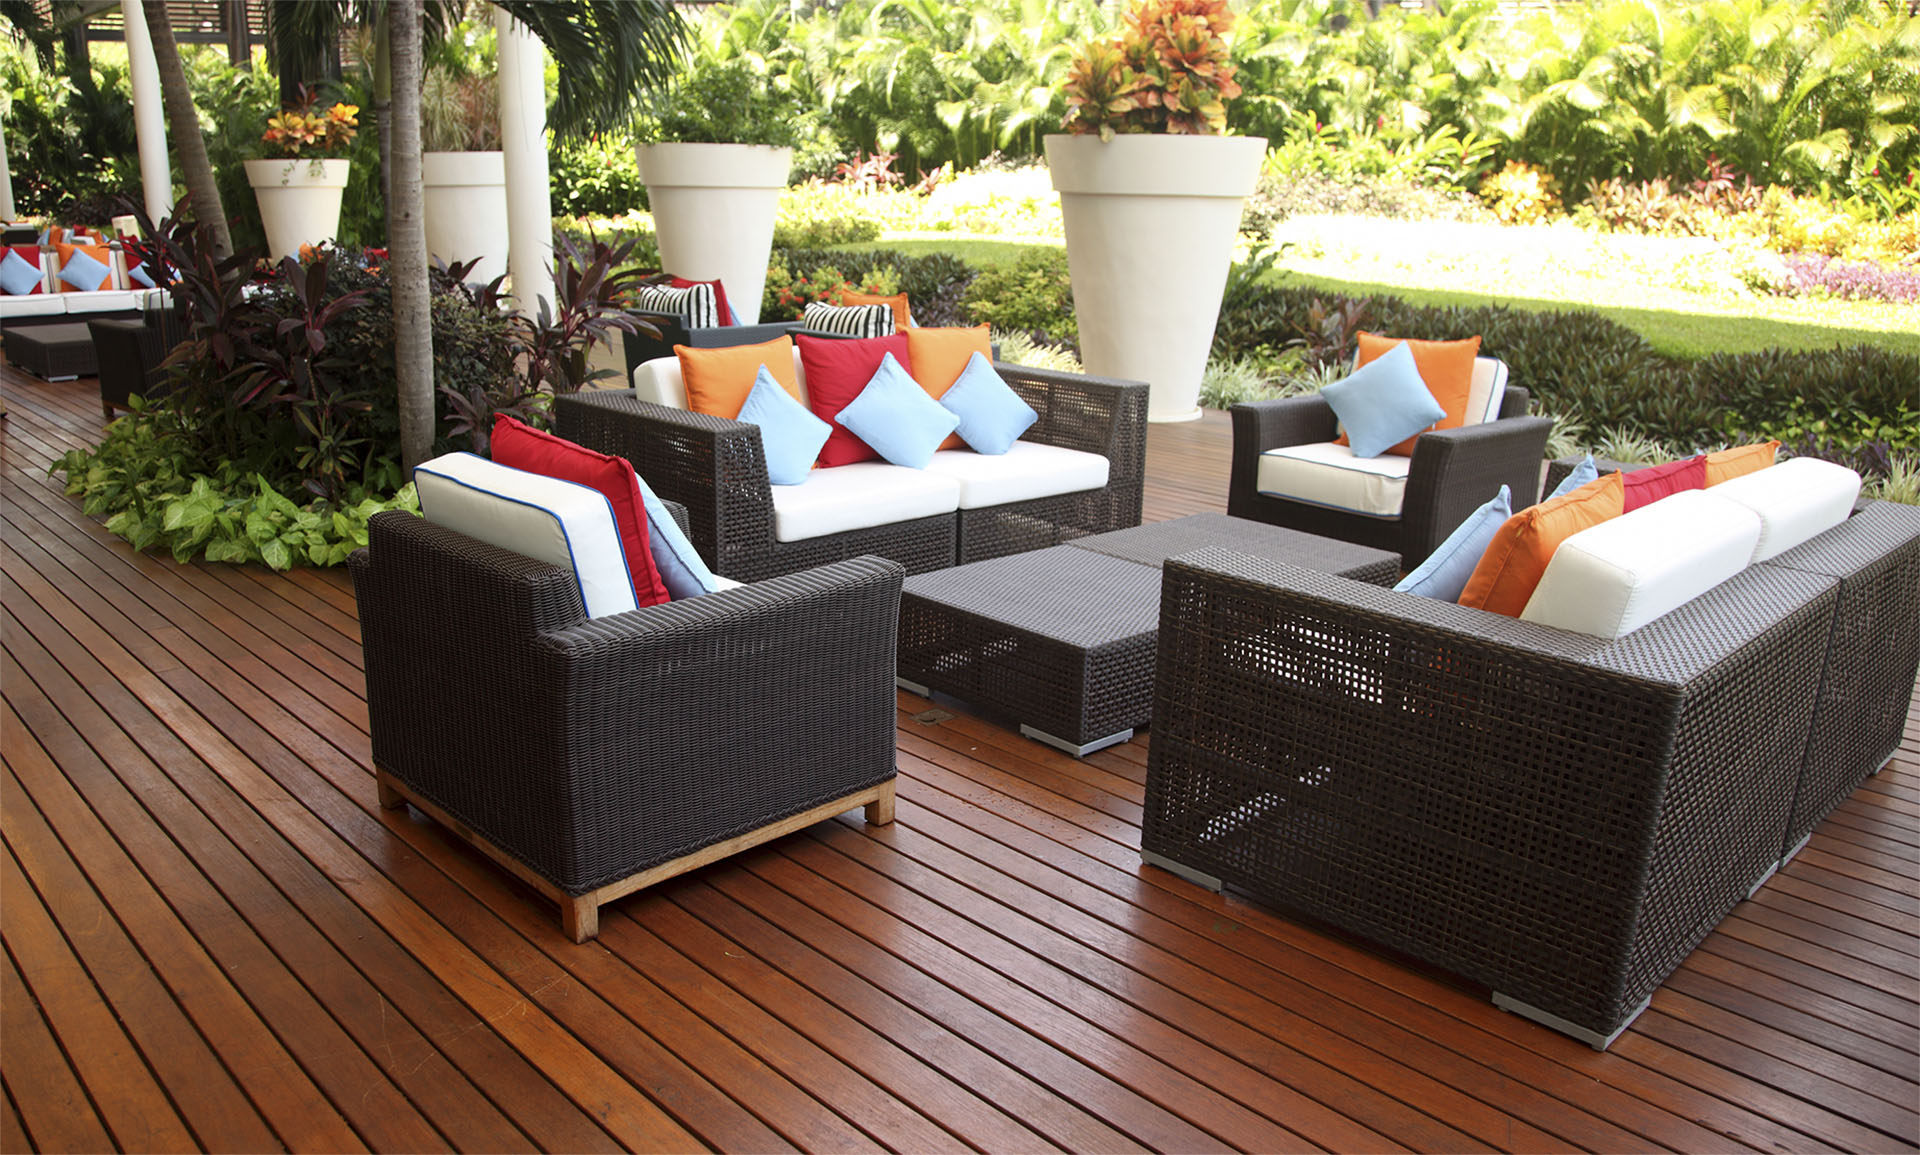 Terrace furniture How to clean terrace furniture with household ingredients ECYIKFZ